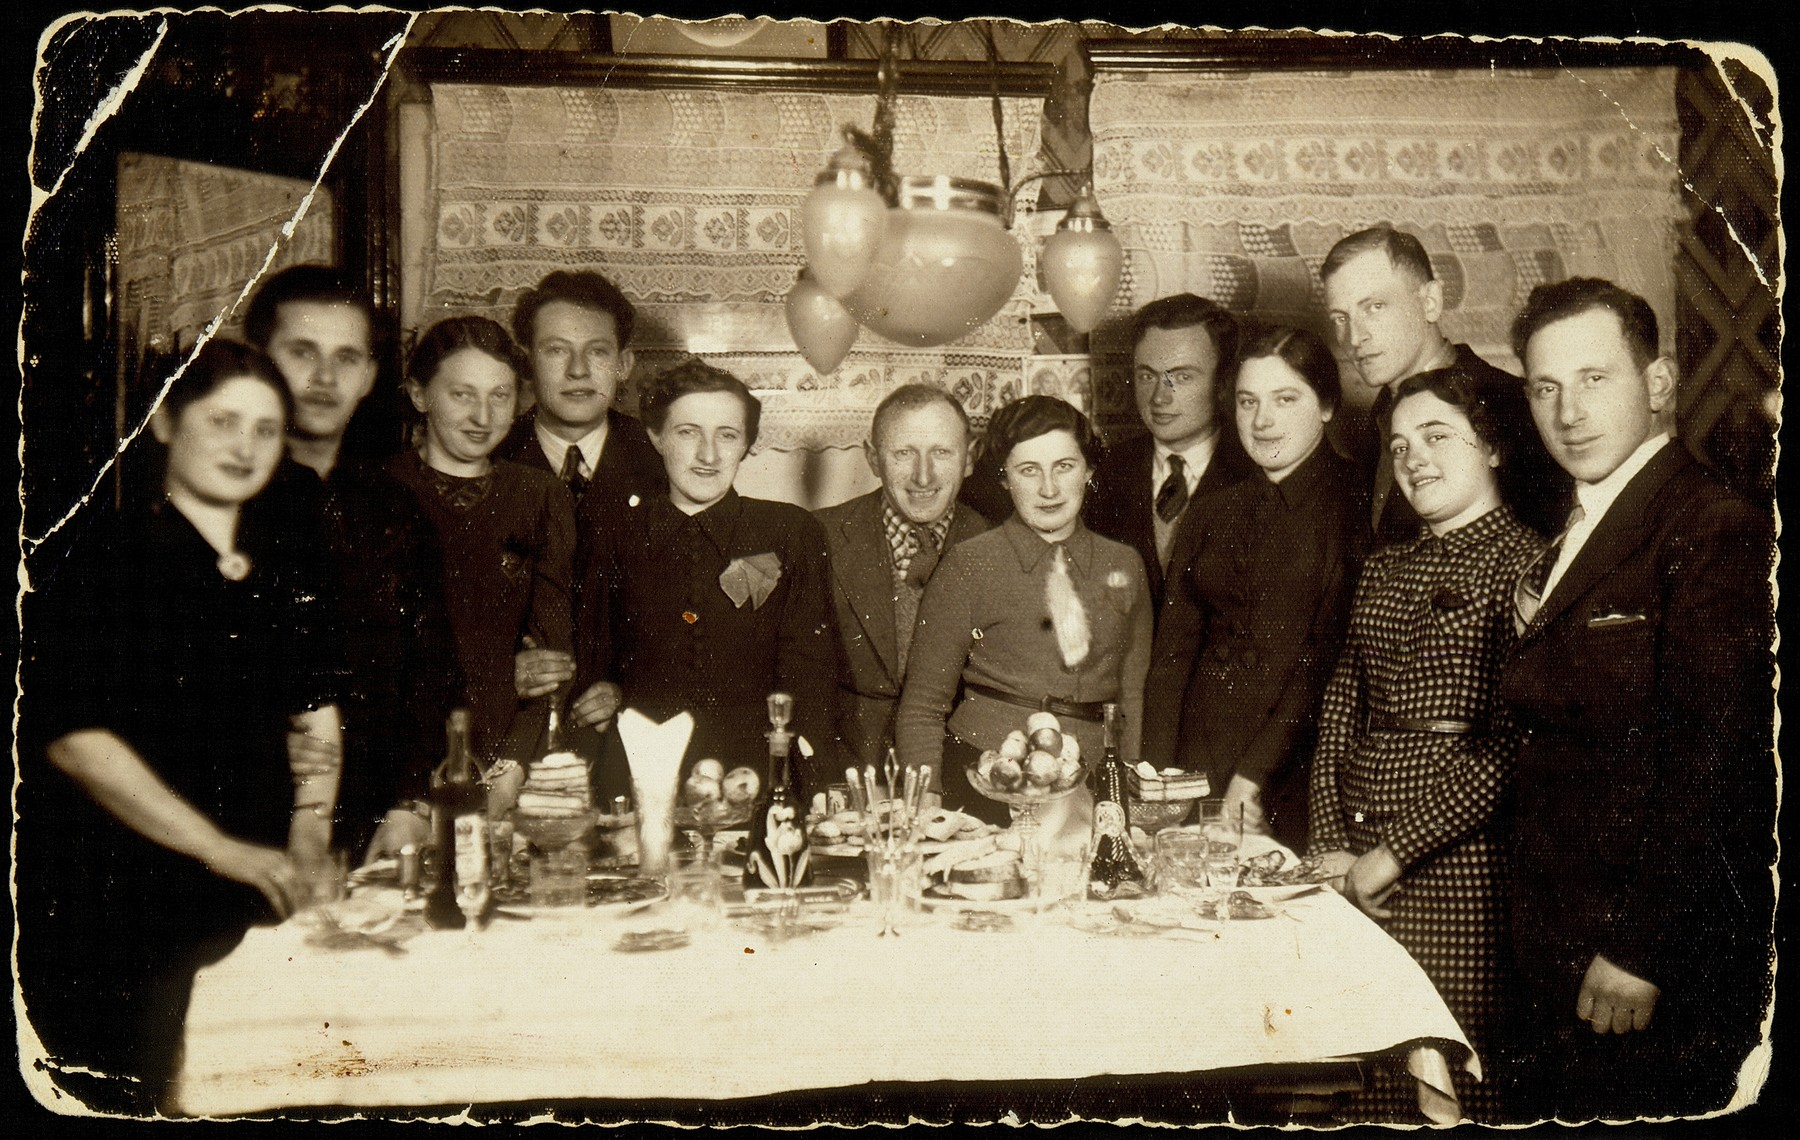 Young people enjoy a Saturday night get-together at the house of Sorl Kabacznik.  From right to left: Meir Shimon Politacki, Kreinele Kanichowski, Shepske Kabacznik, Dina Weidenberg, Leiba Levin, Frumele Abelov, Yehiel Blacharowicz, Miriam Kabacznik Shulman, Aryeh Koplevitz, Shoshana Katz, Zvi Hirshke Schwartz and Hayya Radunski.    Kreinele Kanichowski was murdered by the Polish Home Army.  Leiba Levin survived the Holocaust as a partisan.  Miriam Kabacznik Shulman survived the Holocaust in hiding. Aryeh Koplevitz immigrated to Palestine.  All the other people in the photo were murdered by the Germans in the September 1941 mass killing action.